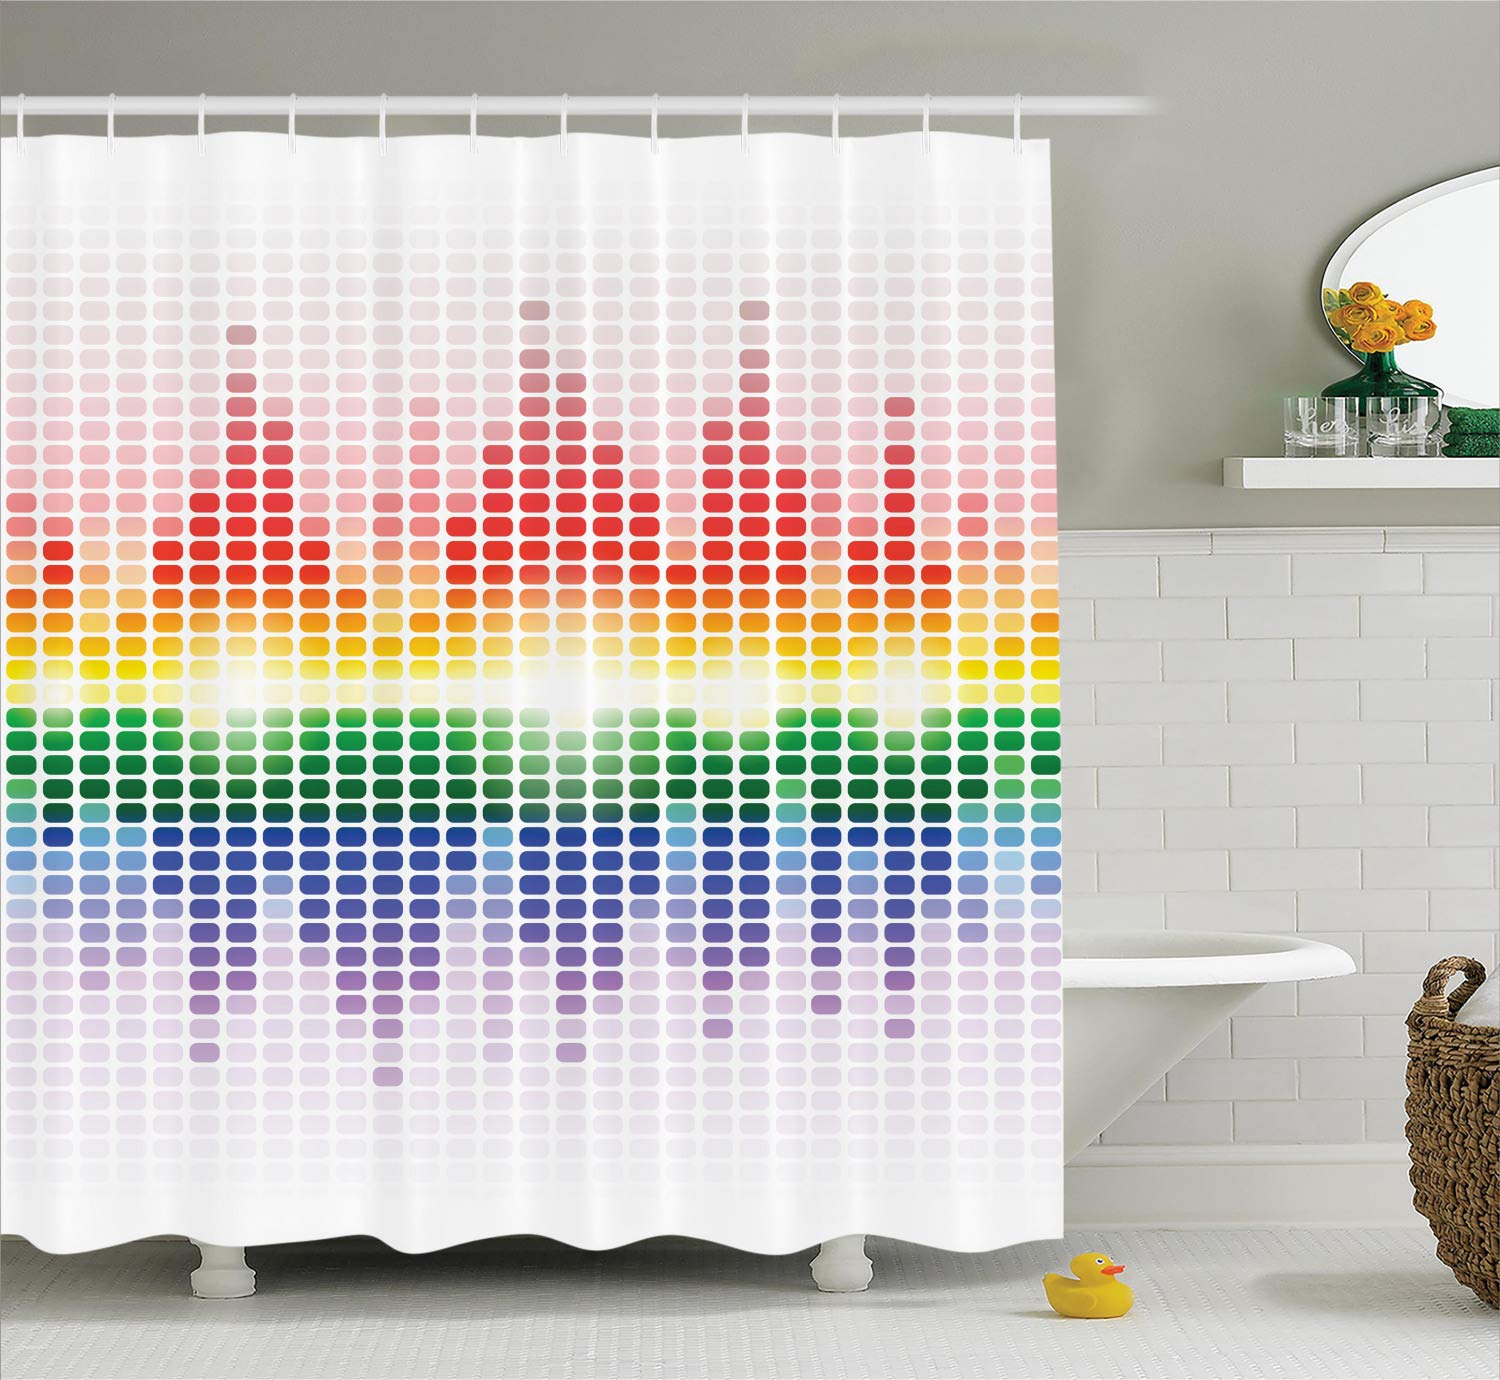 Ambesonne Music Shower Curtain, Rainbow Digital Style Equalizer Amplifier Recording Equipment Night Club Disco Theme, Cloth Fabric Bathroom Decor Set with Hooks, 75'' Long, Rainbow Colors